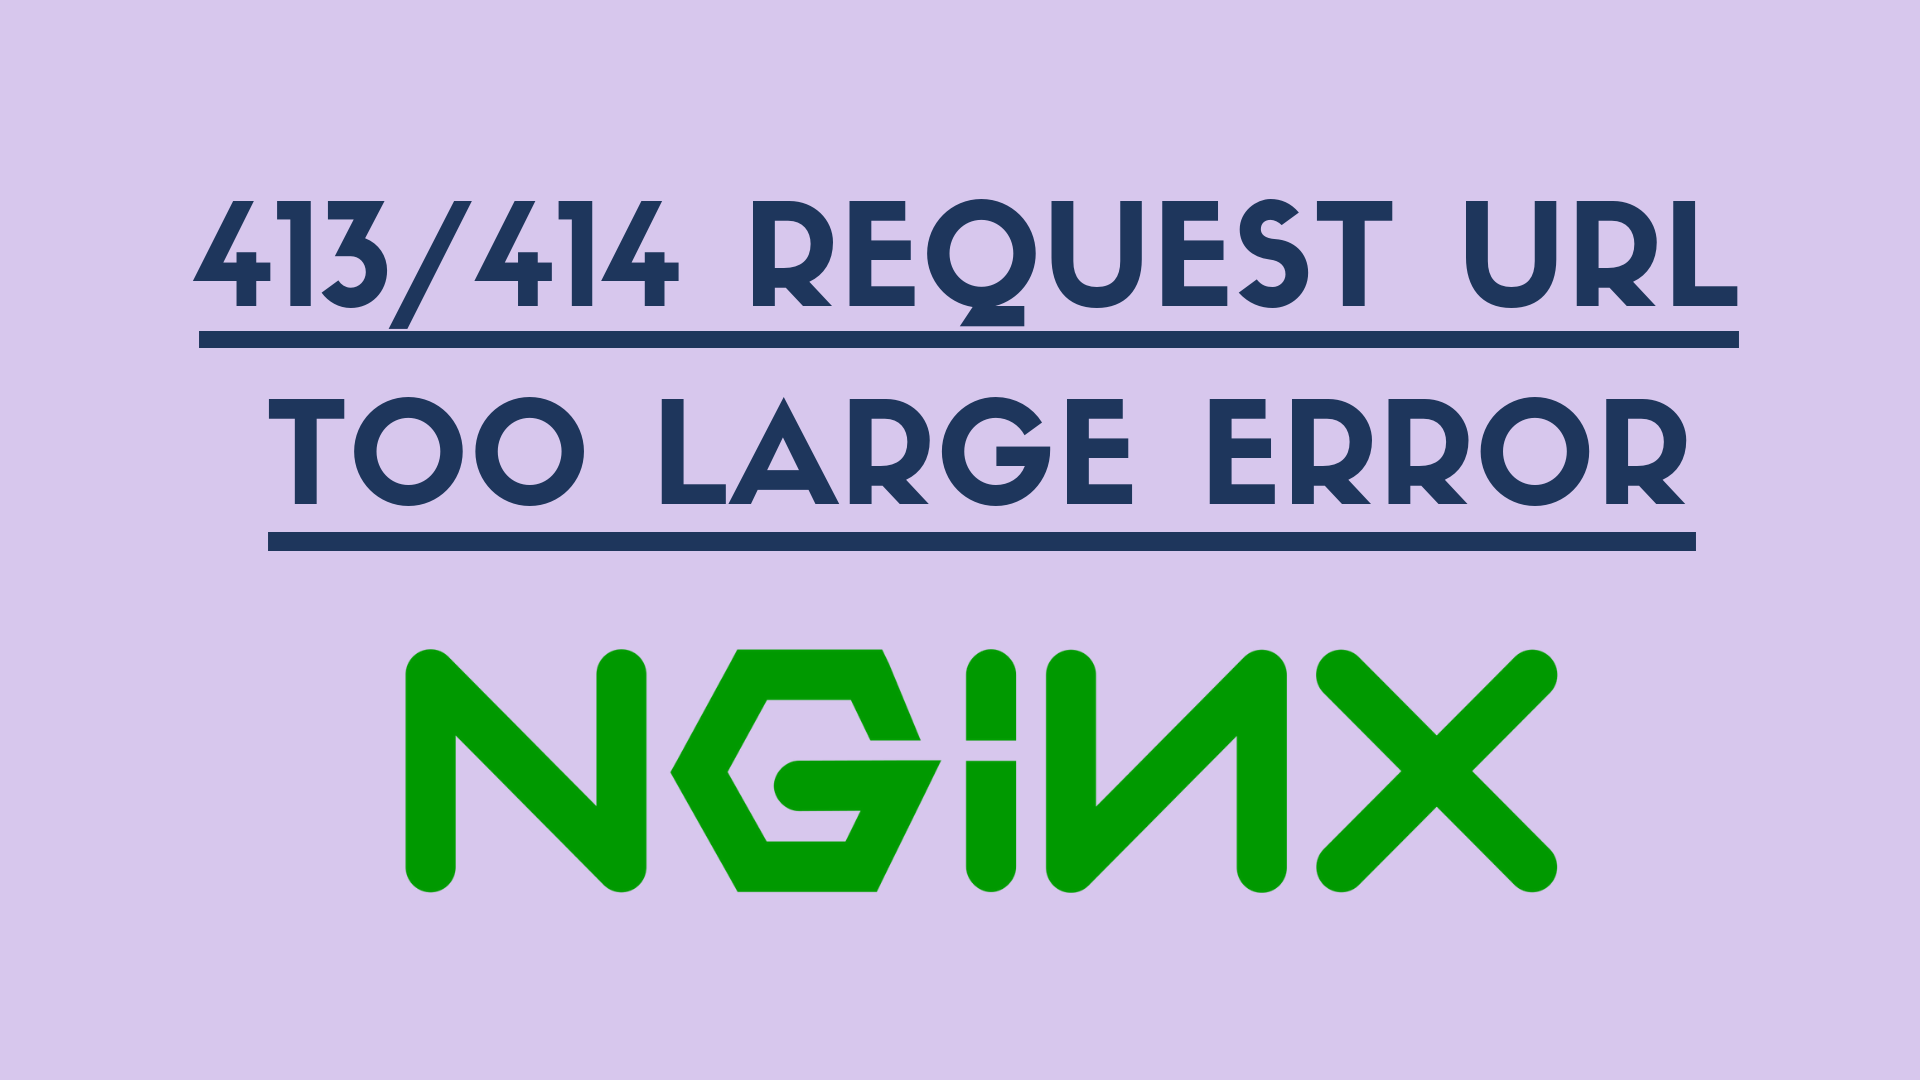 413/414 Request URL/Entity Too Large Error Nginx - Aviabird - Medium